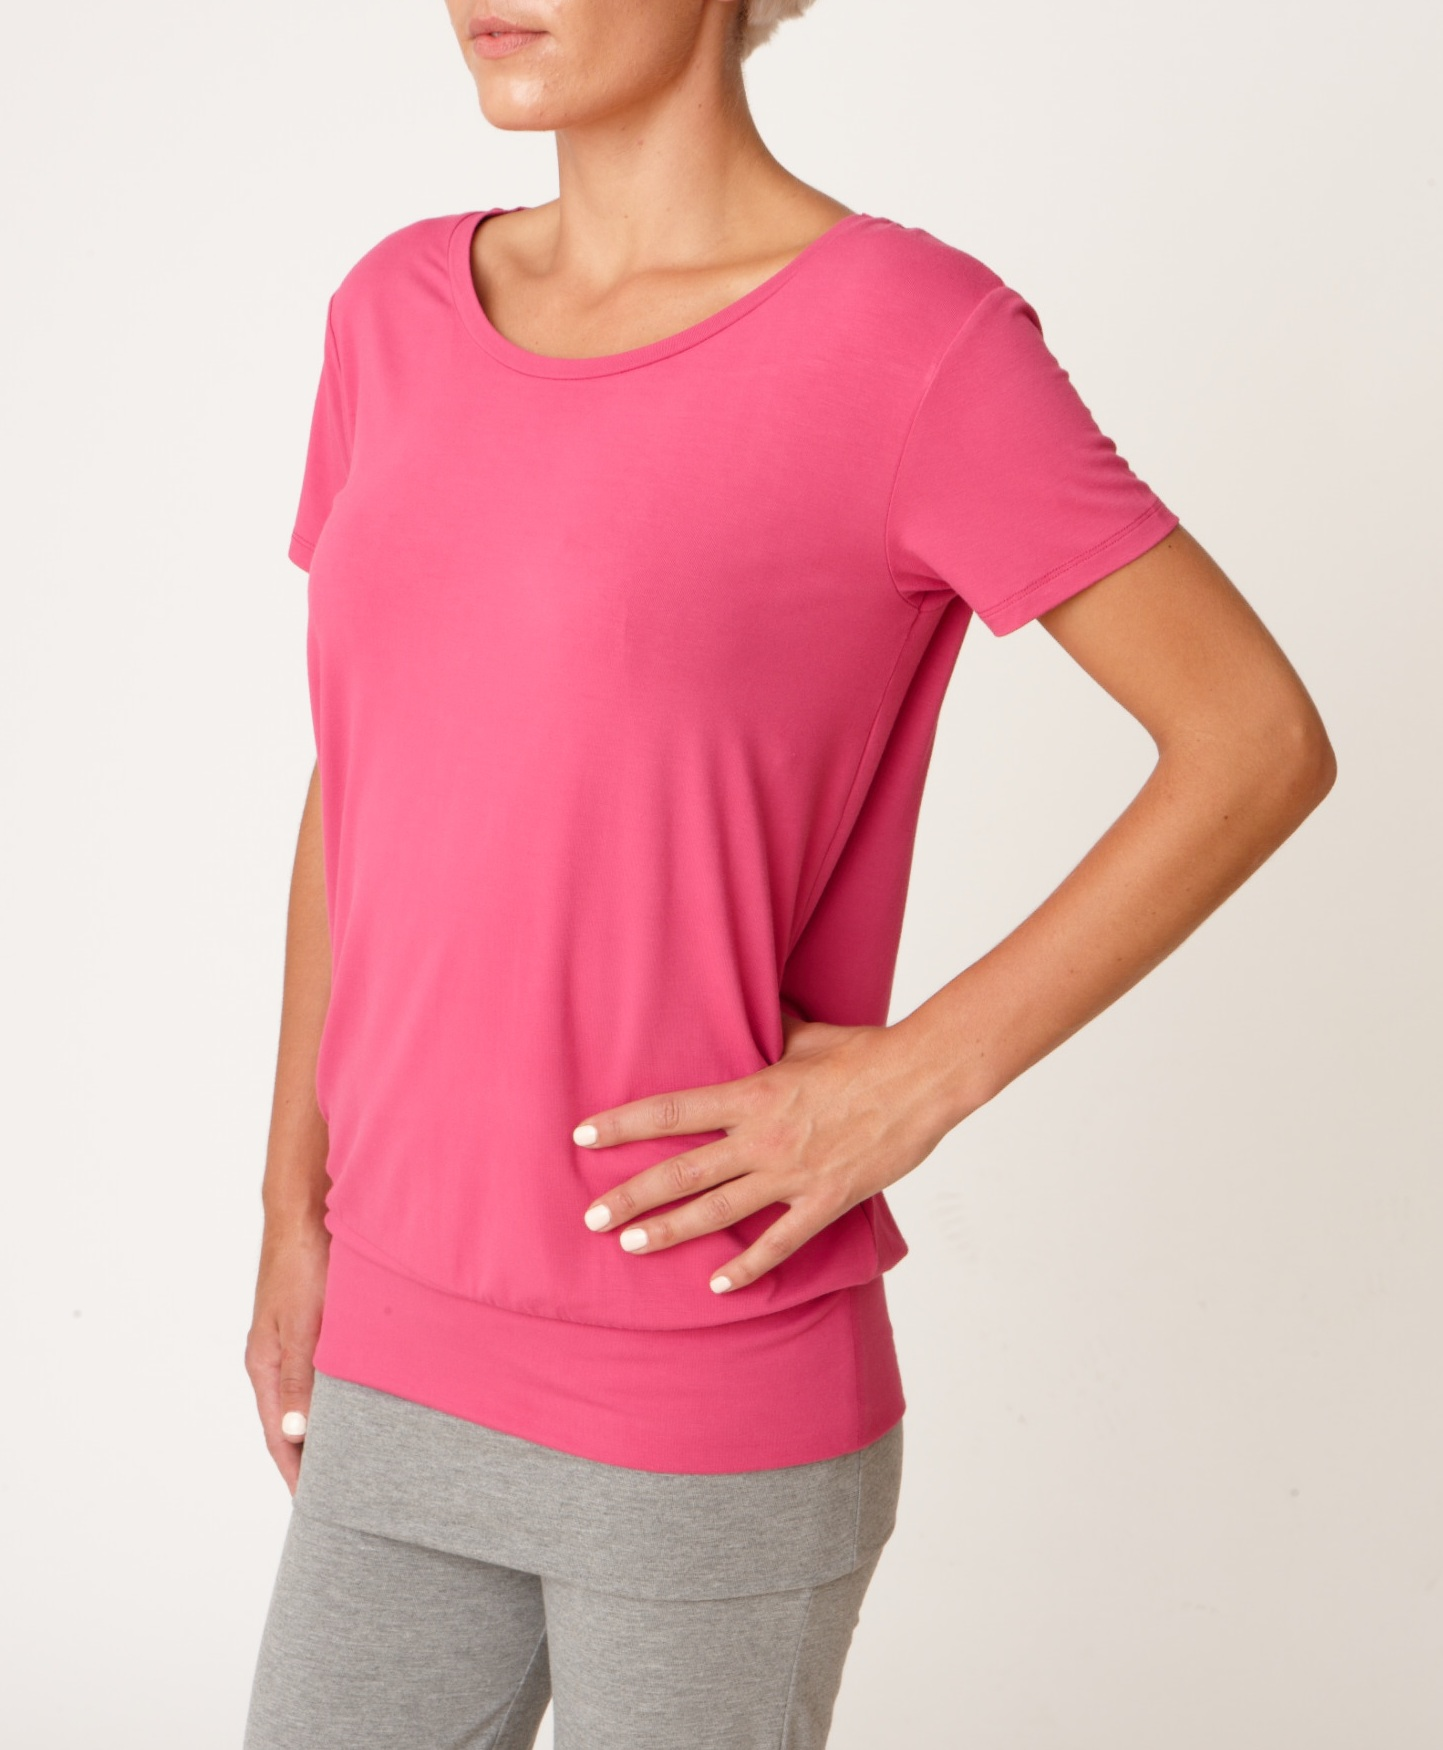 Asquith Smooth You Tee Rose Pink Yoga Vest top